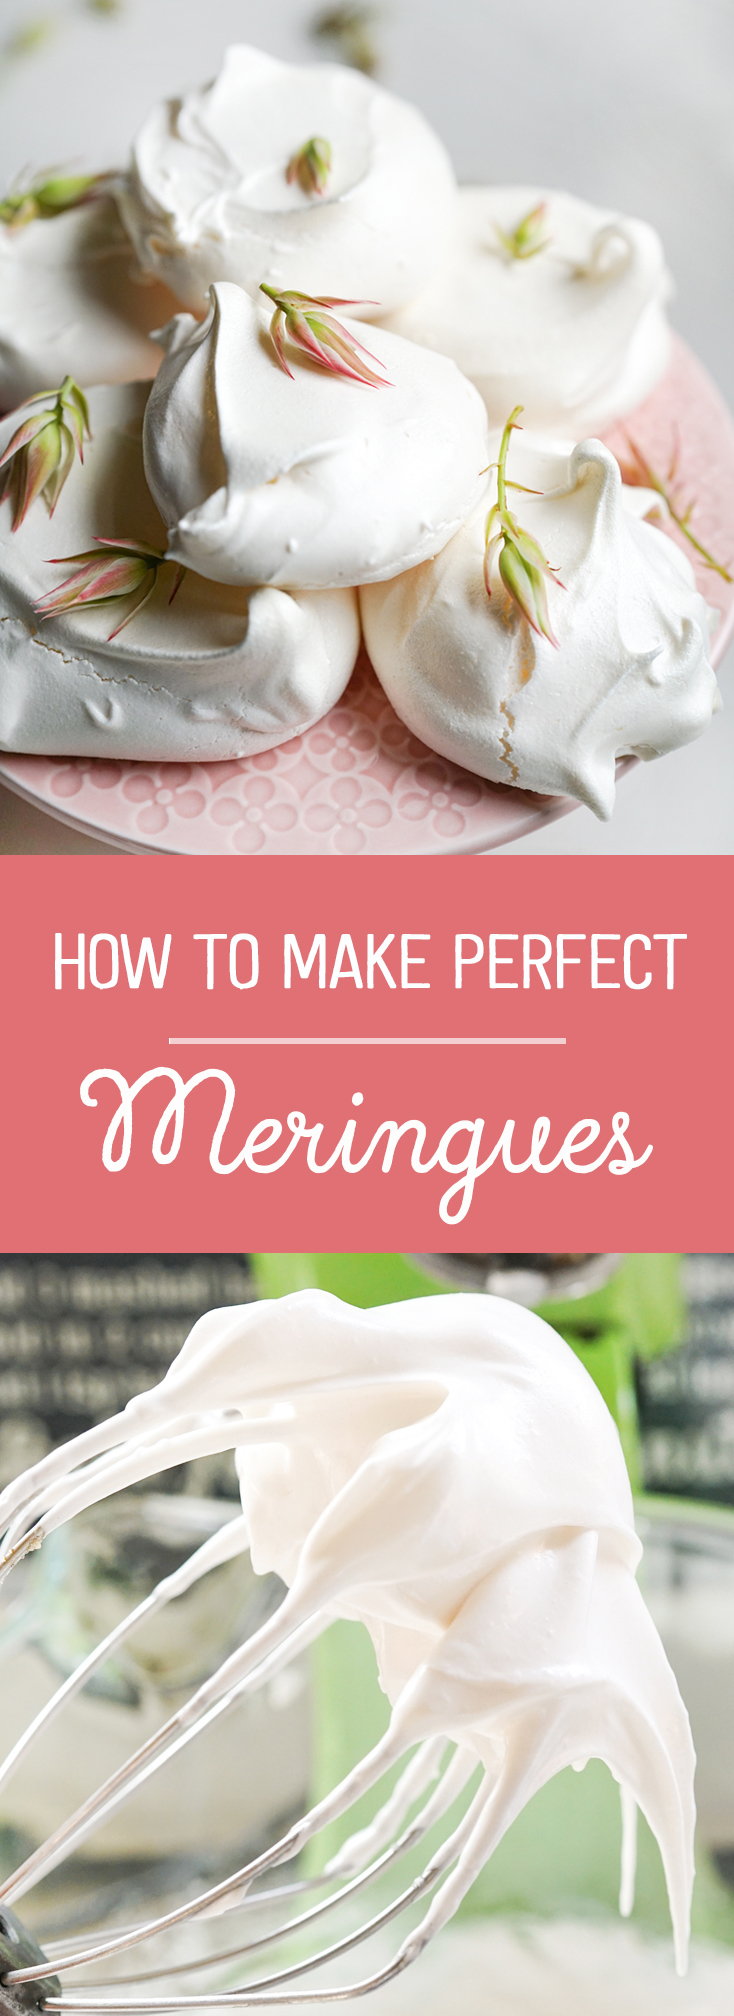 learn how to make perfect meringues